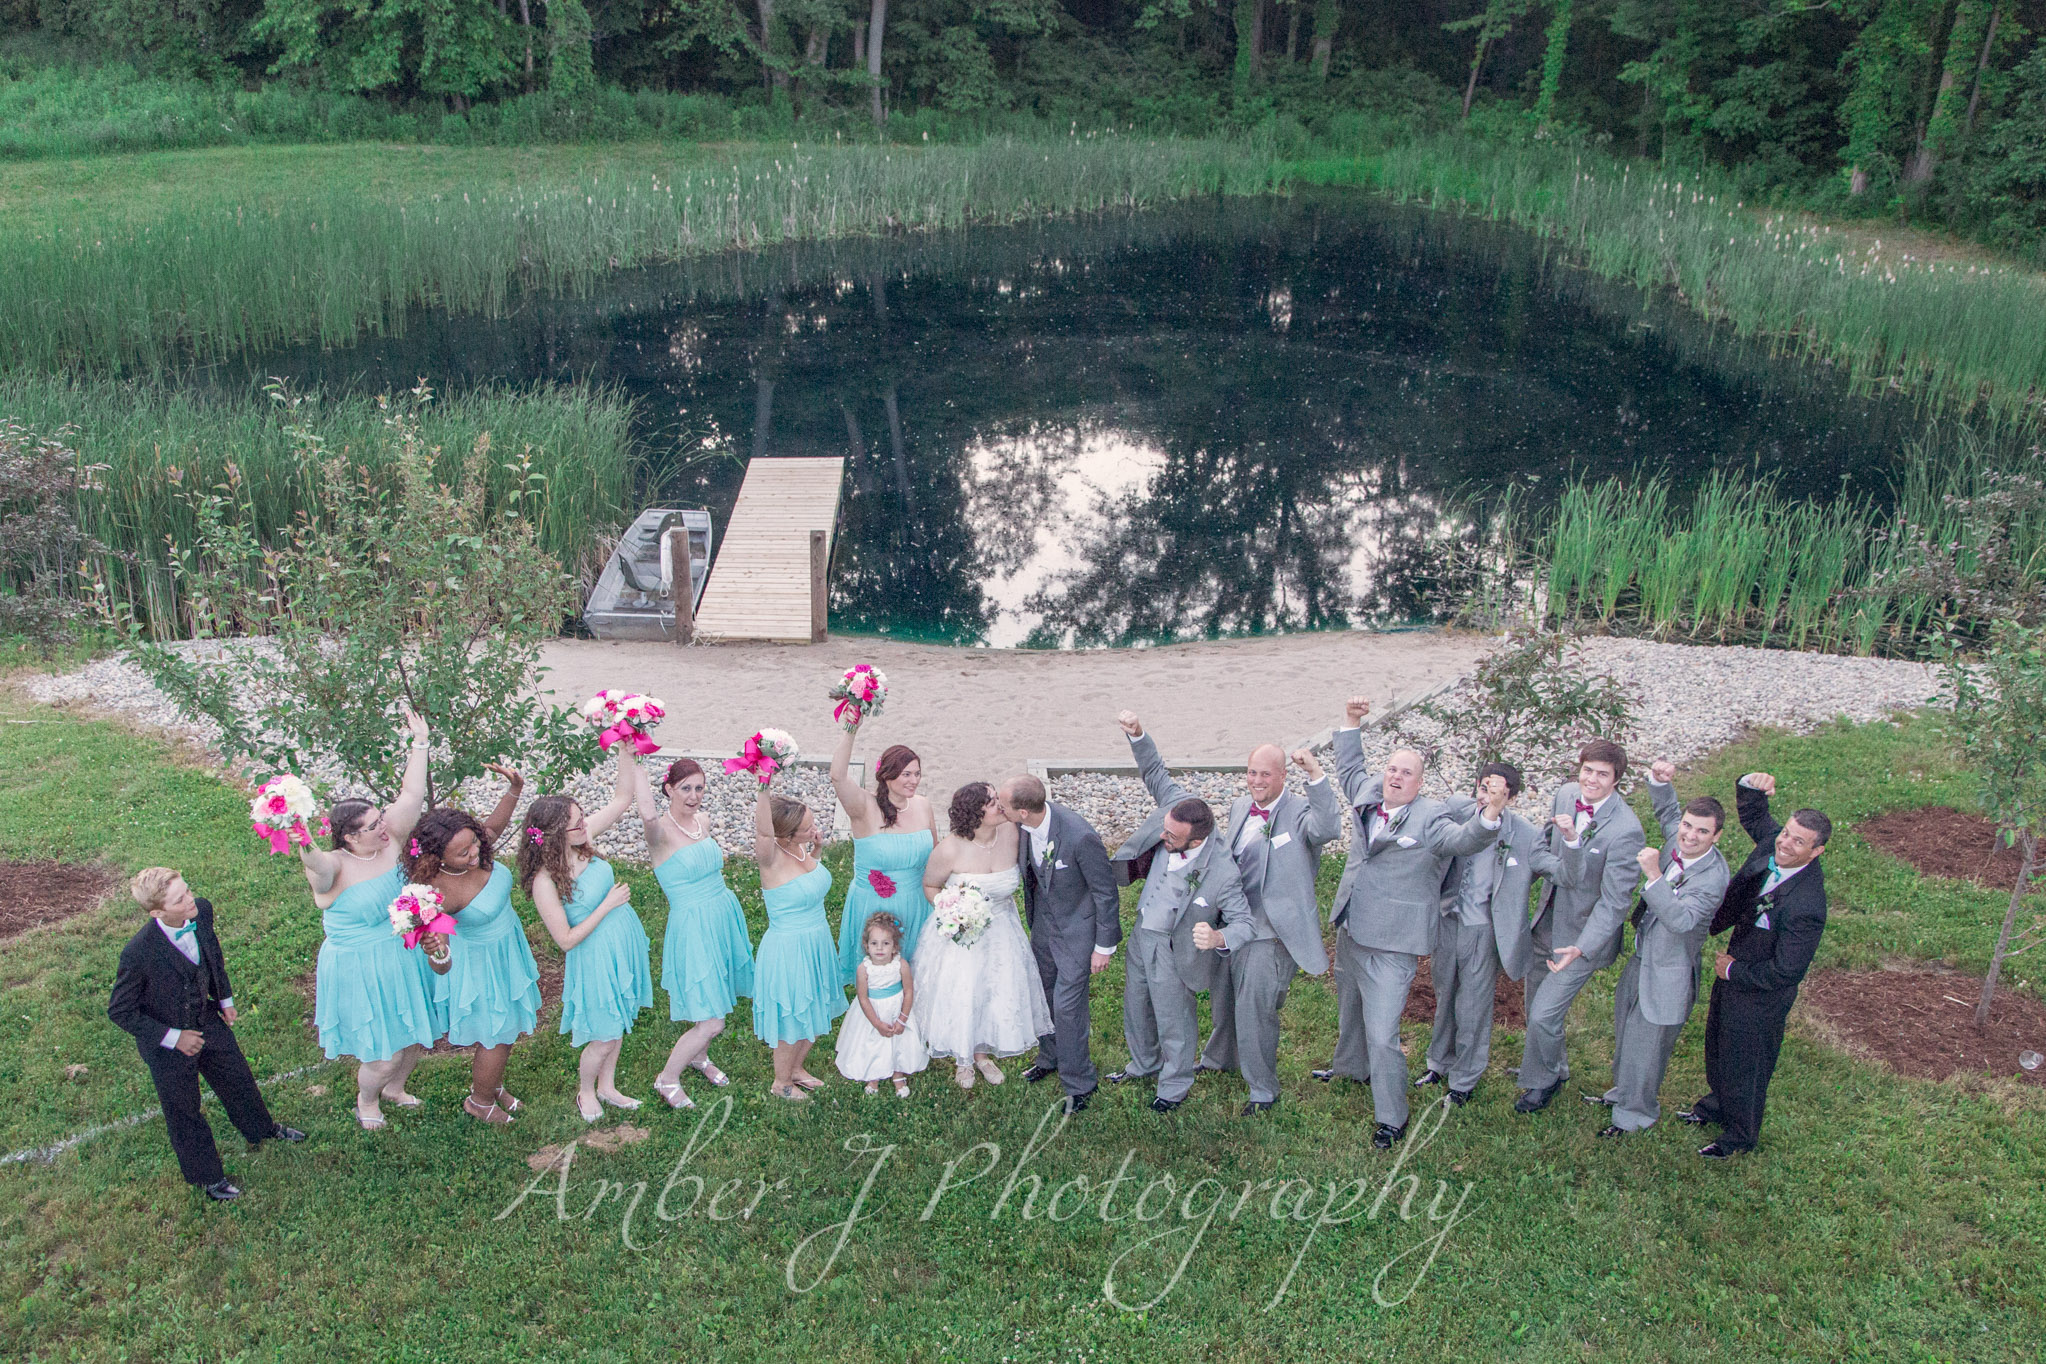 Sommer_Wedding_AmberJphotography_25.jpg